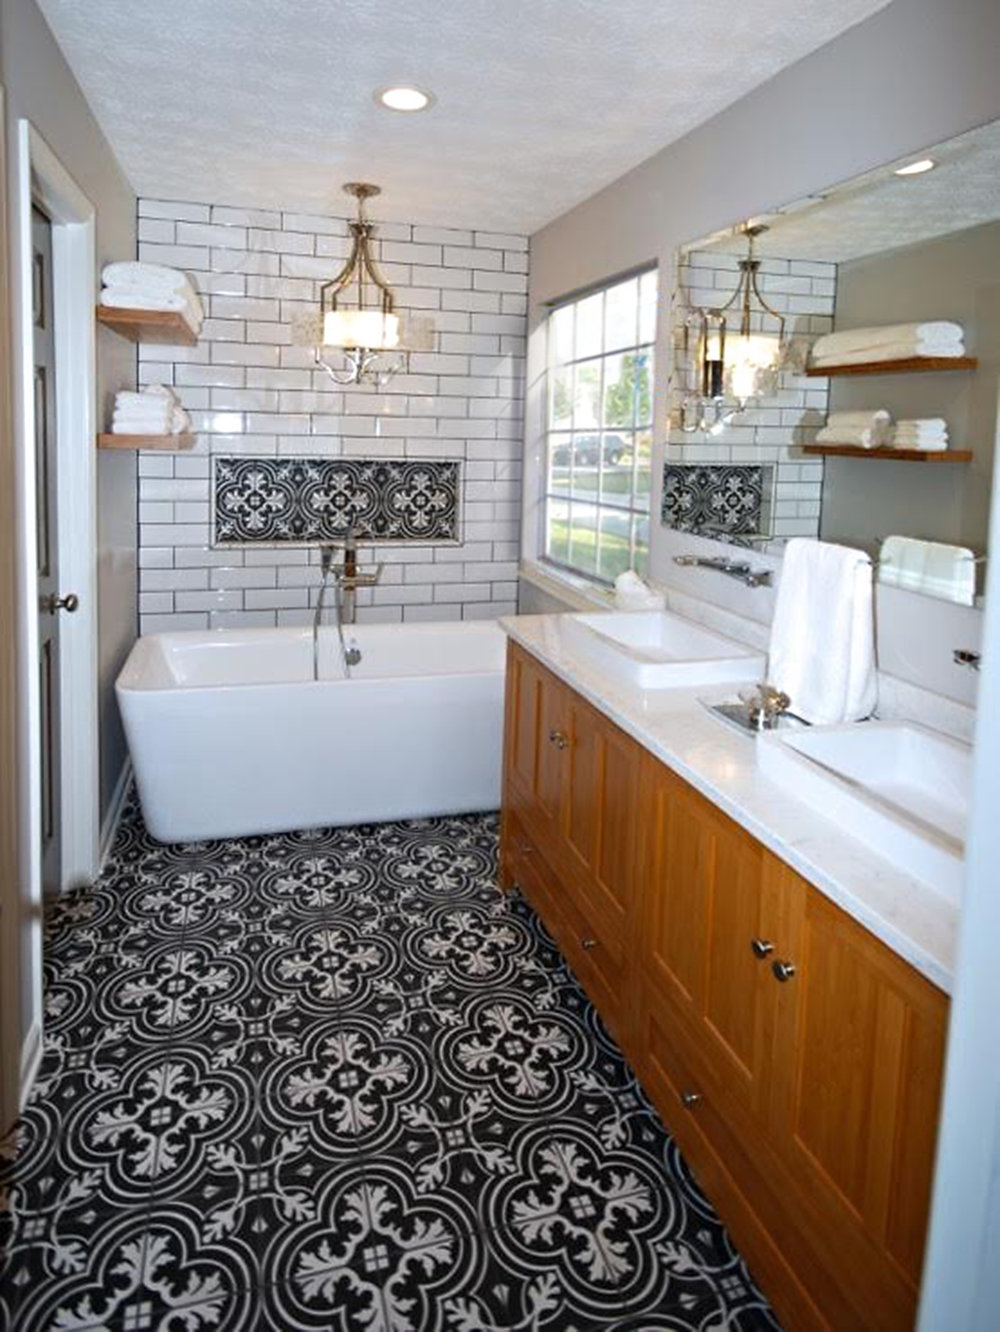 Small Bath Big Style U2014 Heritage Homes And Designs (a Division Of NKCS, Inc.)